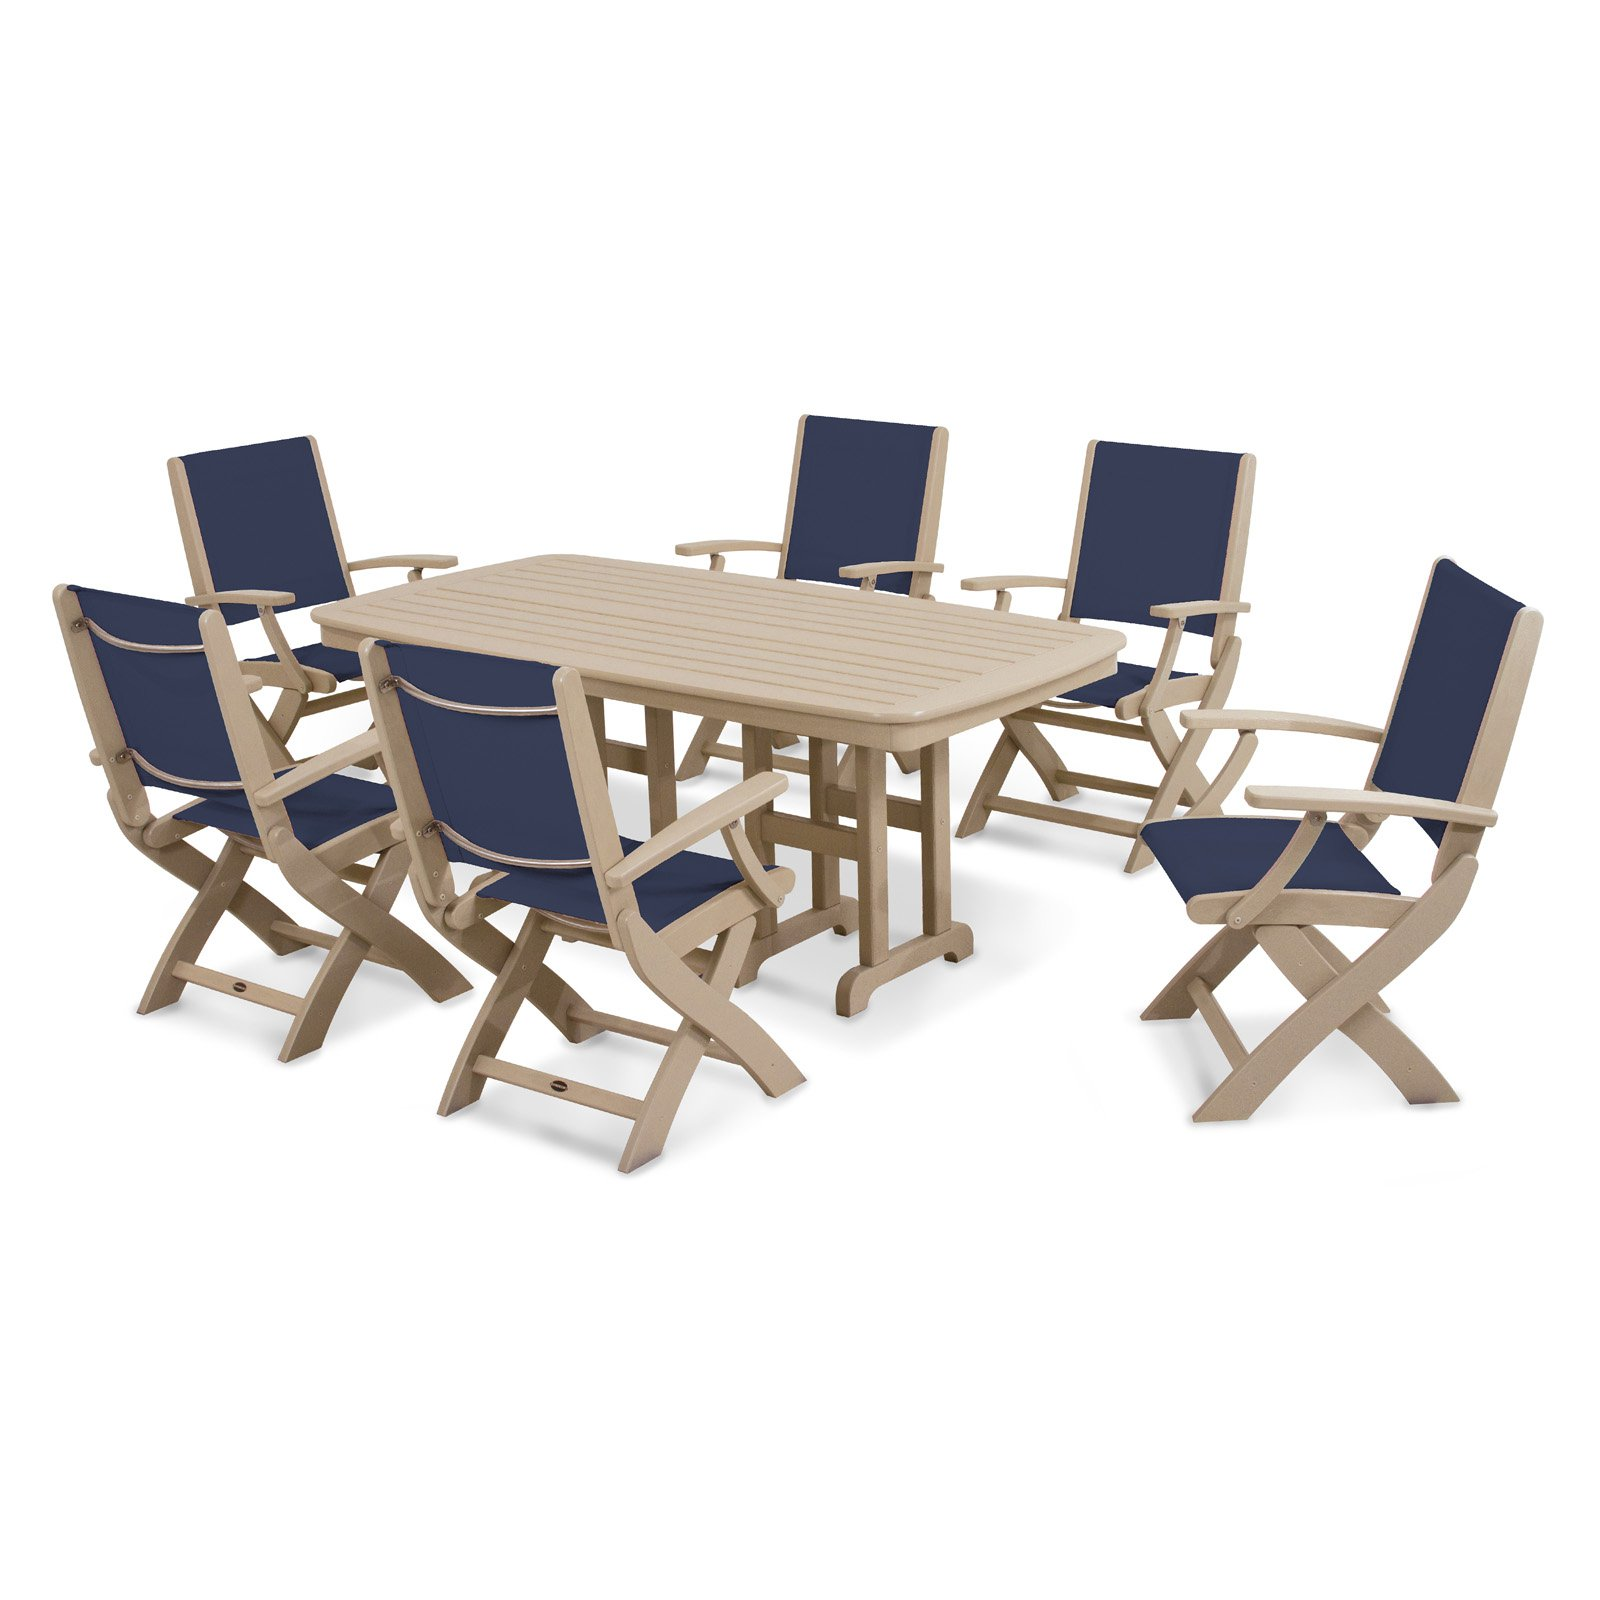 POLYWOOD® Coastal Sling Dining Set - Seats 6